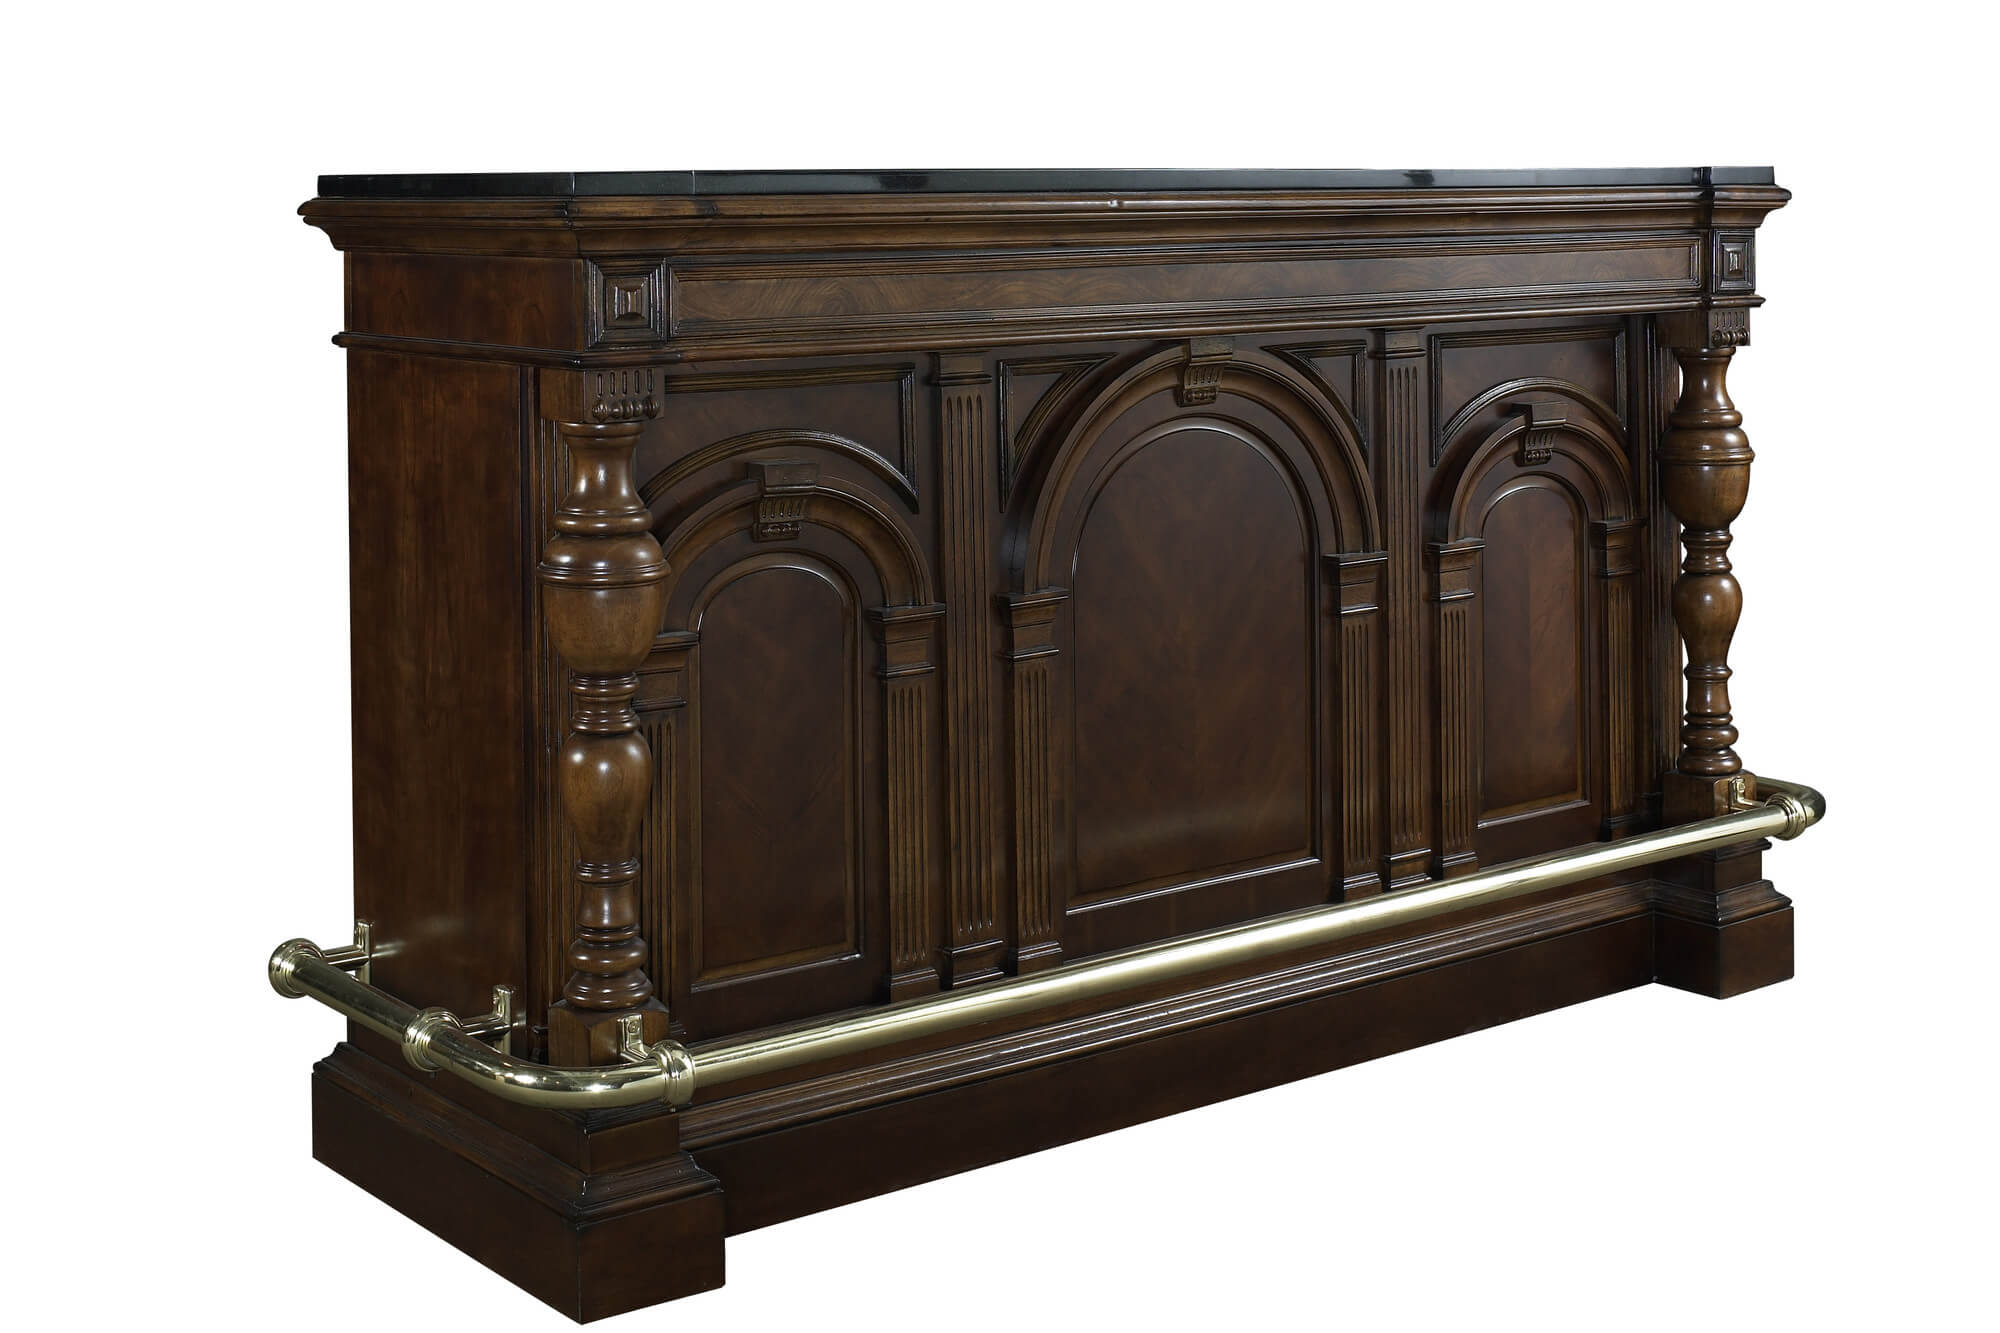 If you want masculine, this is the home bar for you. It's large and sturdy and designed for the classic masculine bar environment.